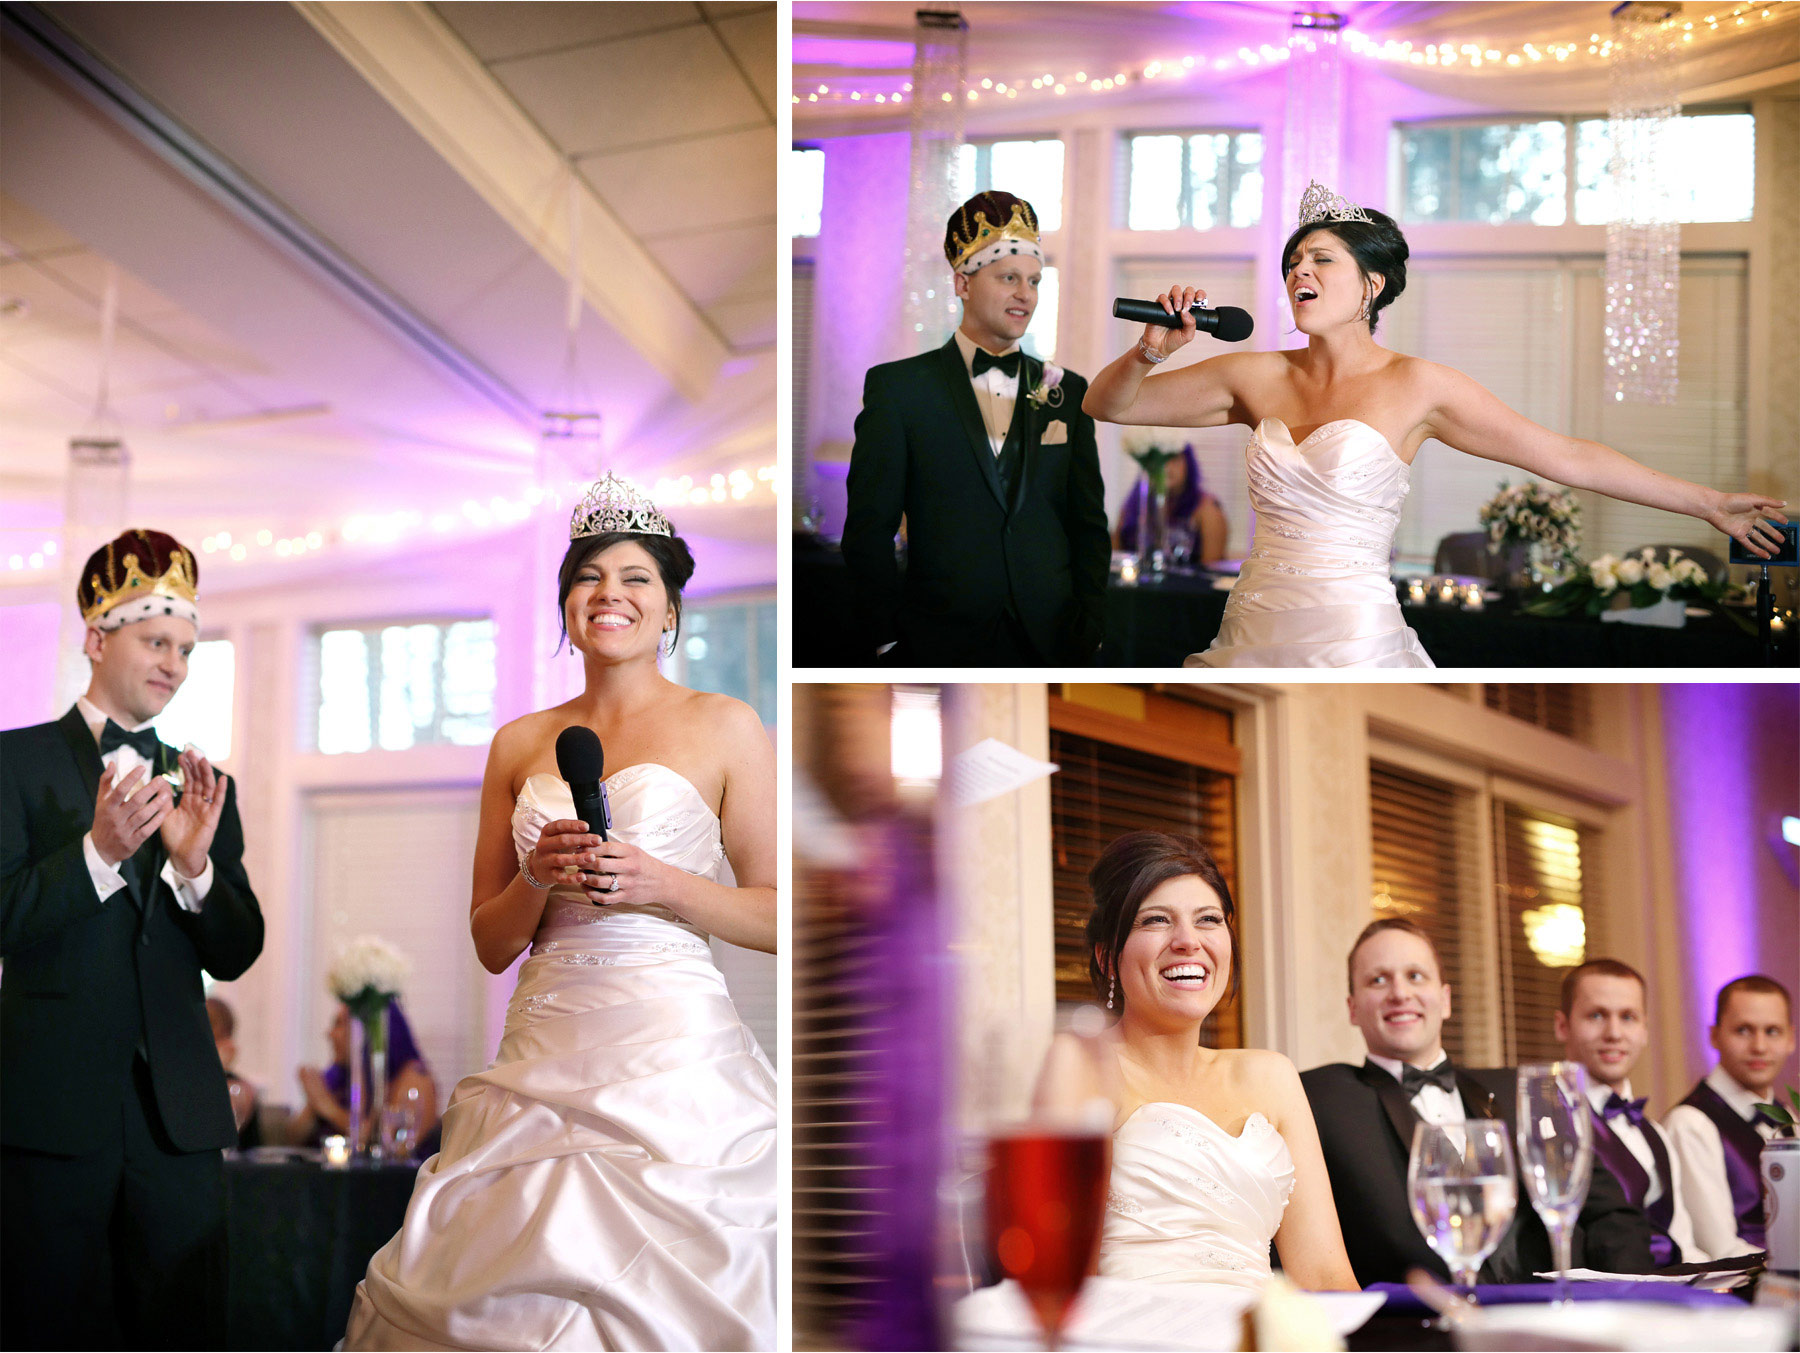 23-Eden-Prairie-Minnesota-Wedding-Photographer-by-Andrew-Vick-Photography-Fall-Autumn-Bearpath-Golf-Country-Club-Reception-Bride-Groom-Crown-Tiara-King-Queen-Speeches-Singing-Singer-Laughter-Brittany-and-Ryan.jpg